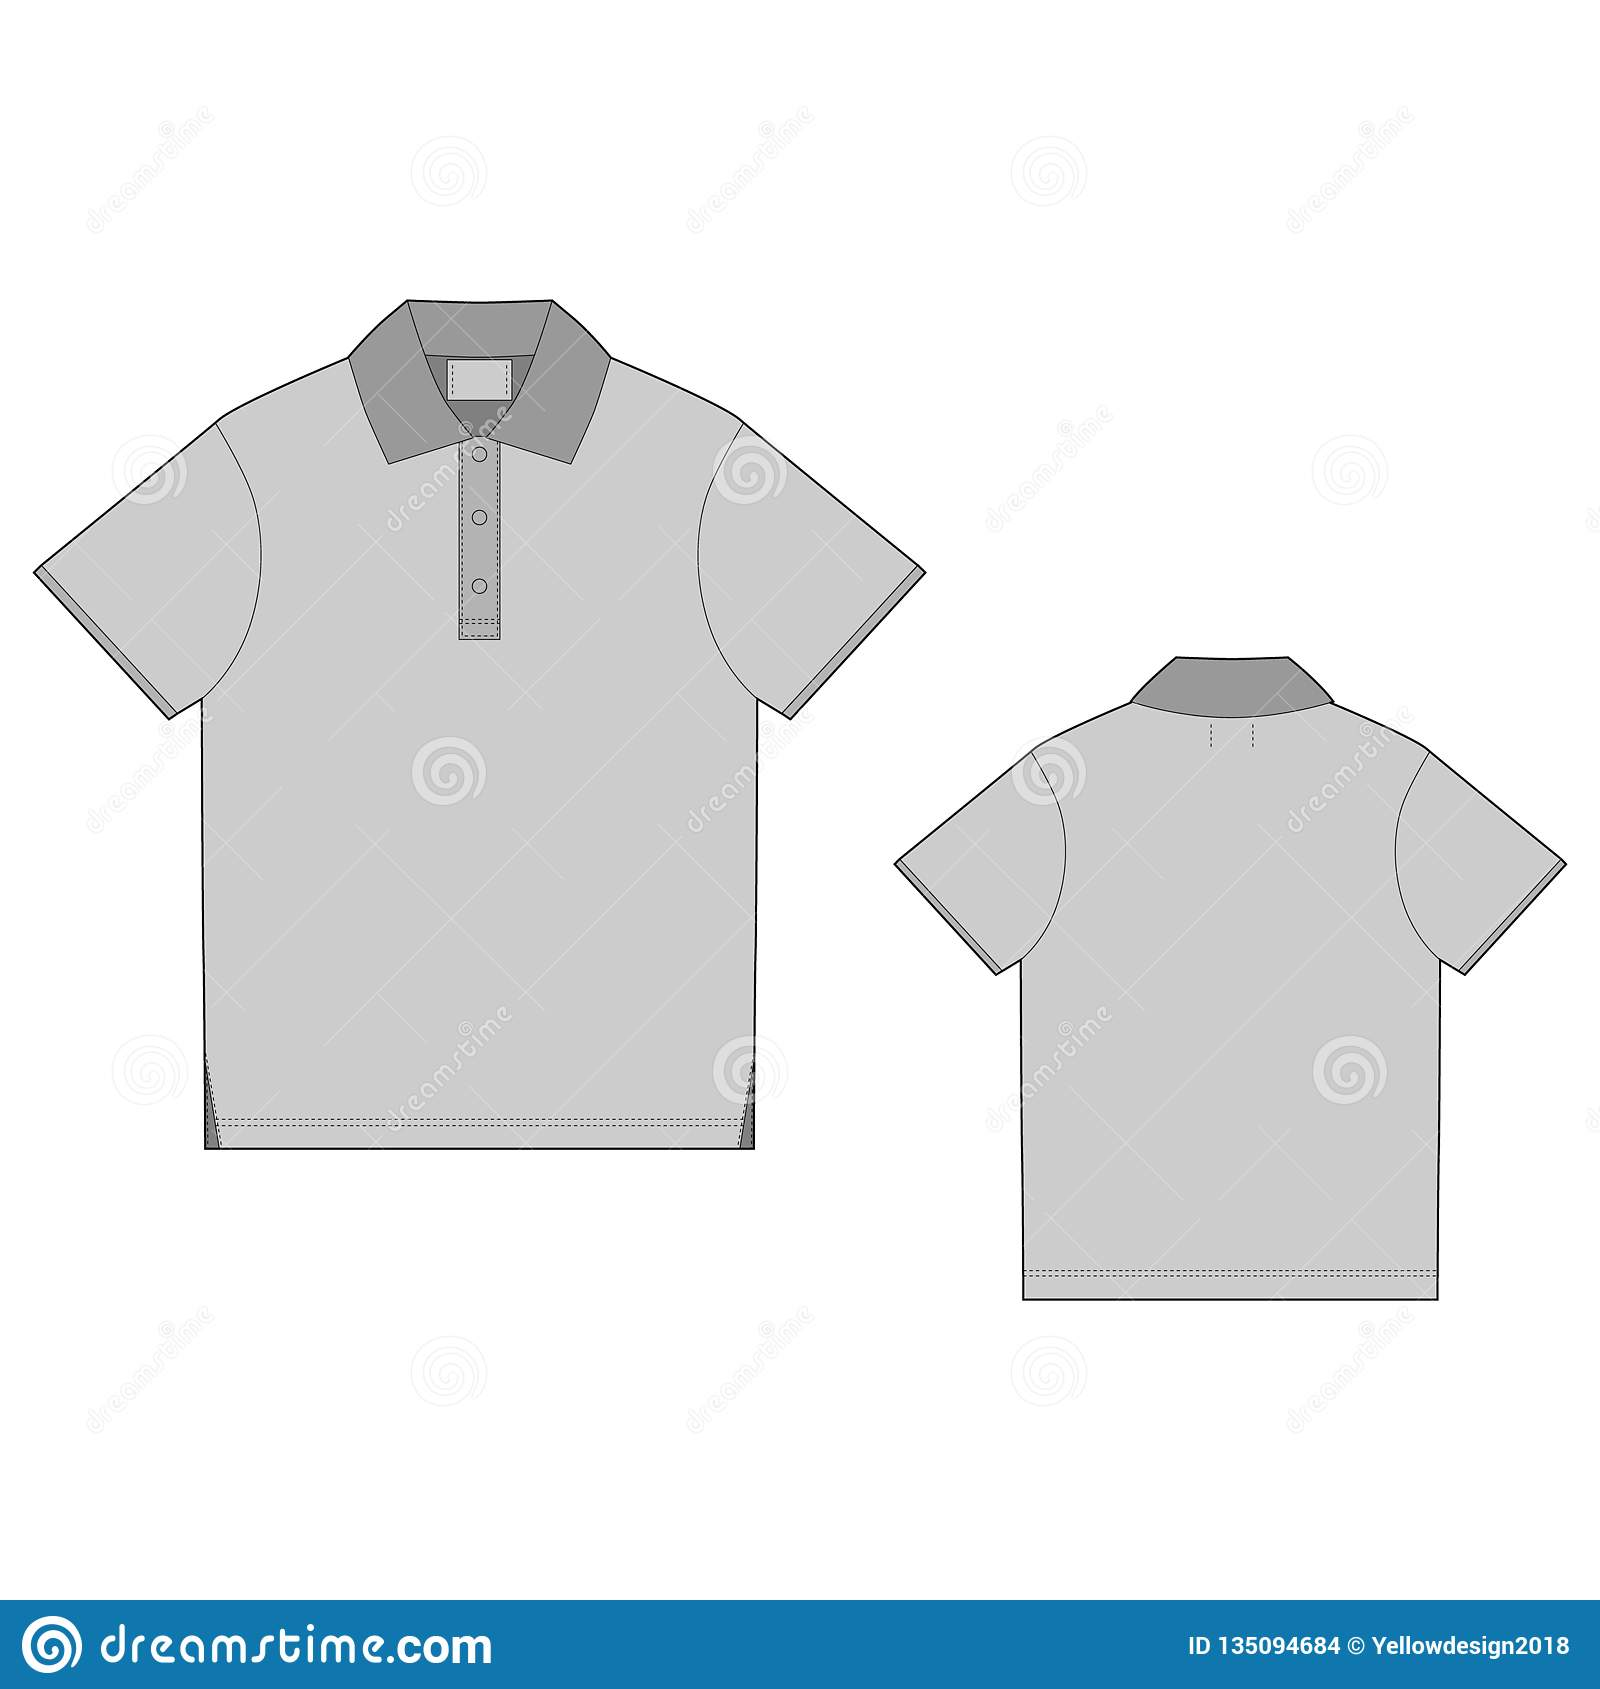 fd8b4bf3ecf3b Polo t-shirt design template. Front and back . Technical sketch unisex t  shirt